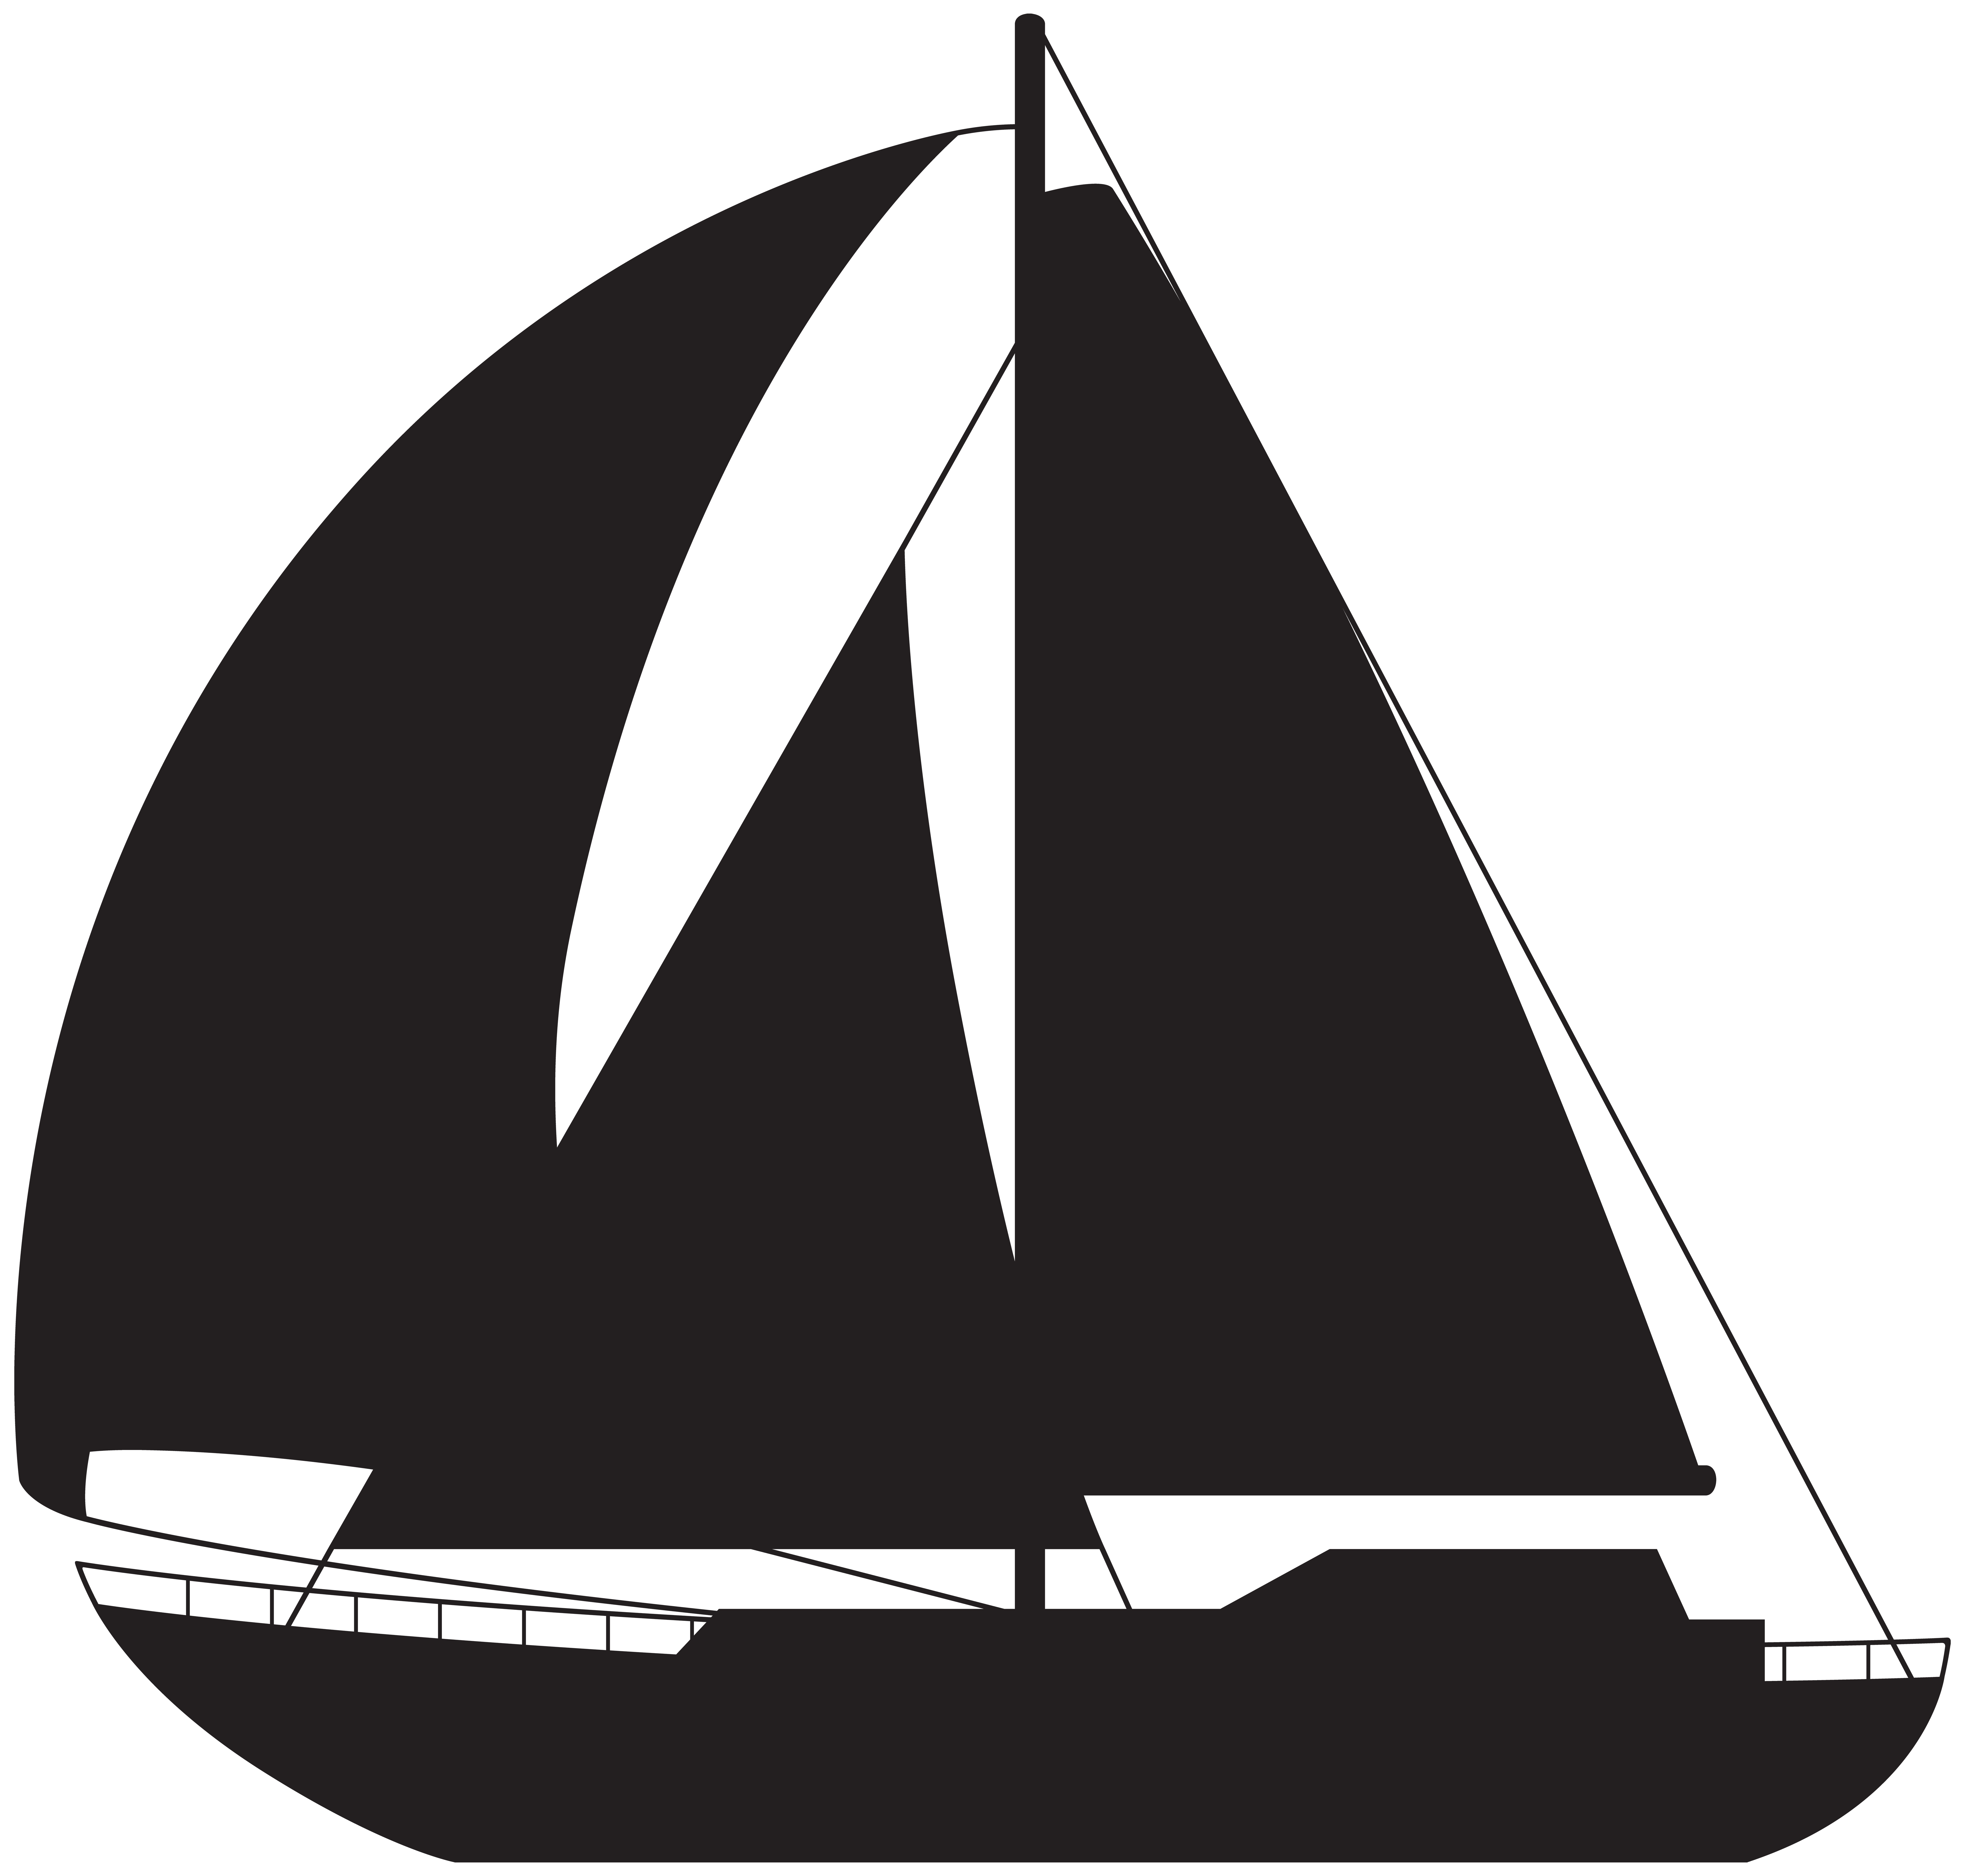 Silhouette clip art image. Sailboat png vector black and white